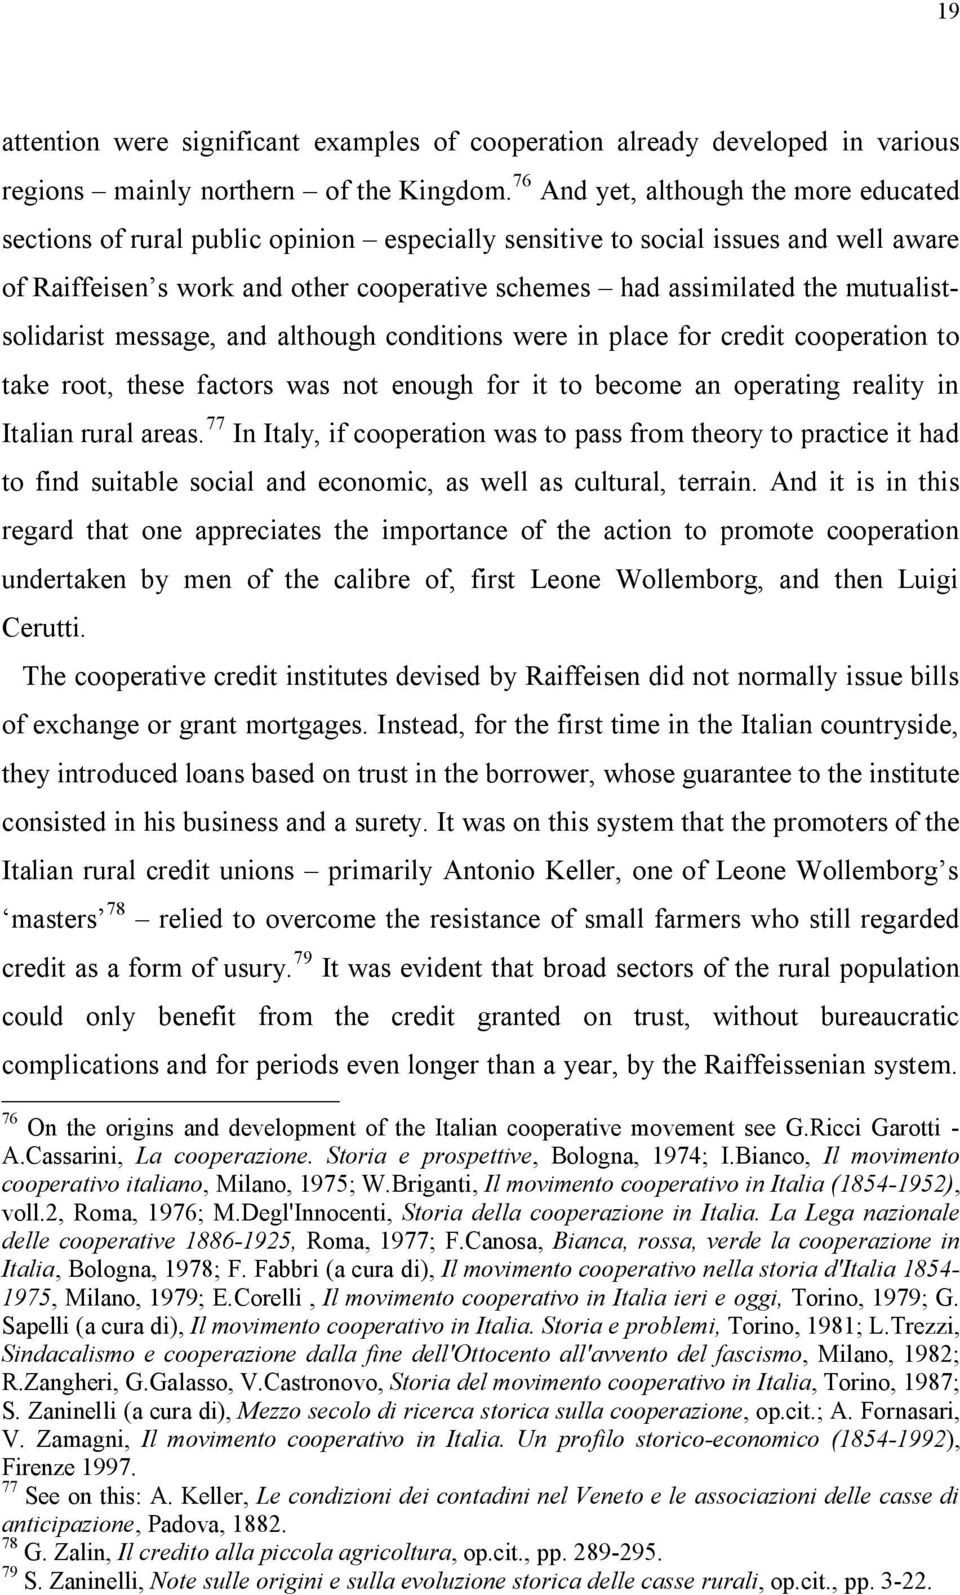 mutualistsolidarist message, and although conditions were in place for credit cooperation to take root, these factors was not enough for it to become an operating reality in Italian rural areas.